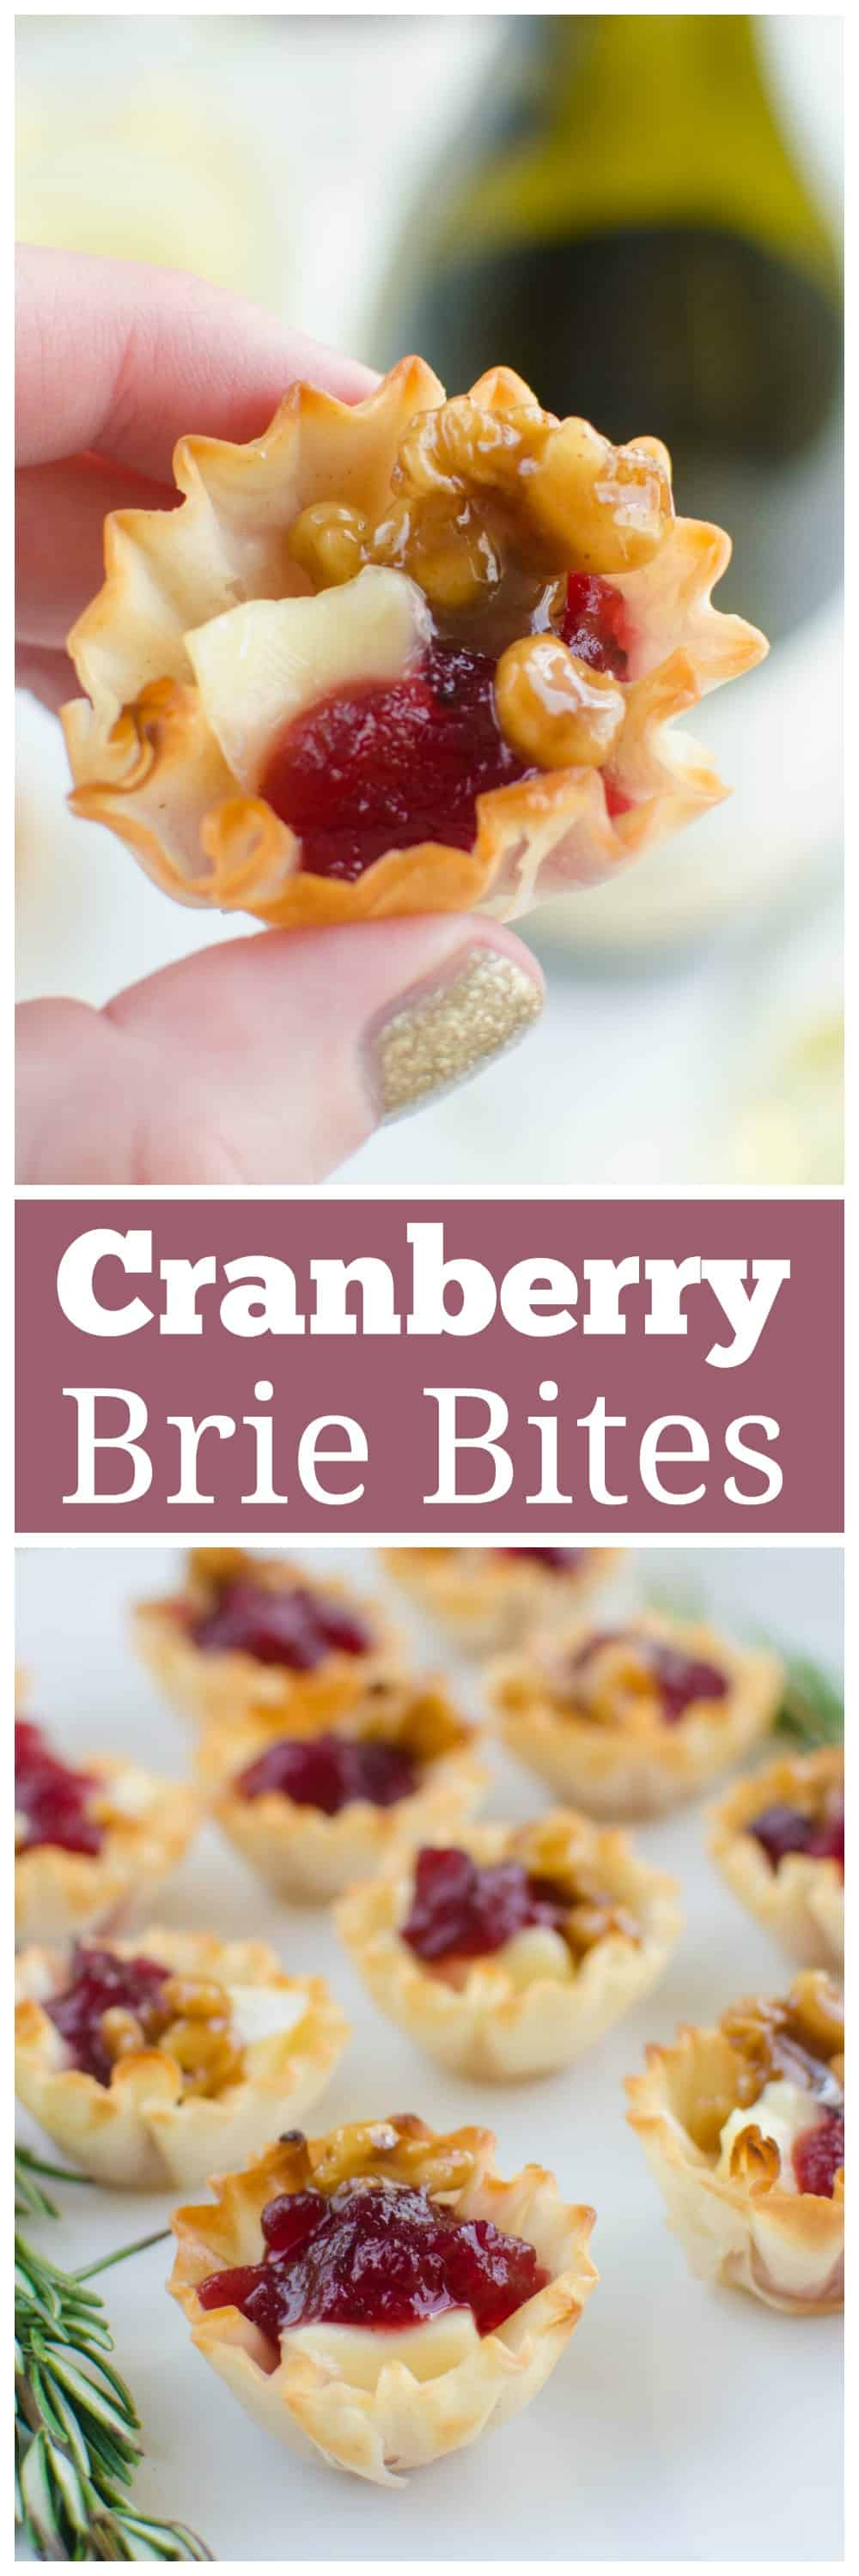 Cranberry Brie Bites - a quick and easy holiday appetizer! Melted brie and cranberry sauce in crisp phyllo cups with candied walnuts on top!